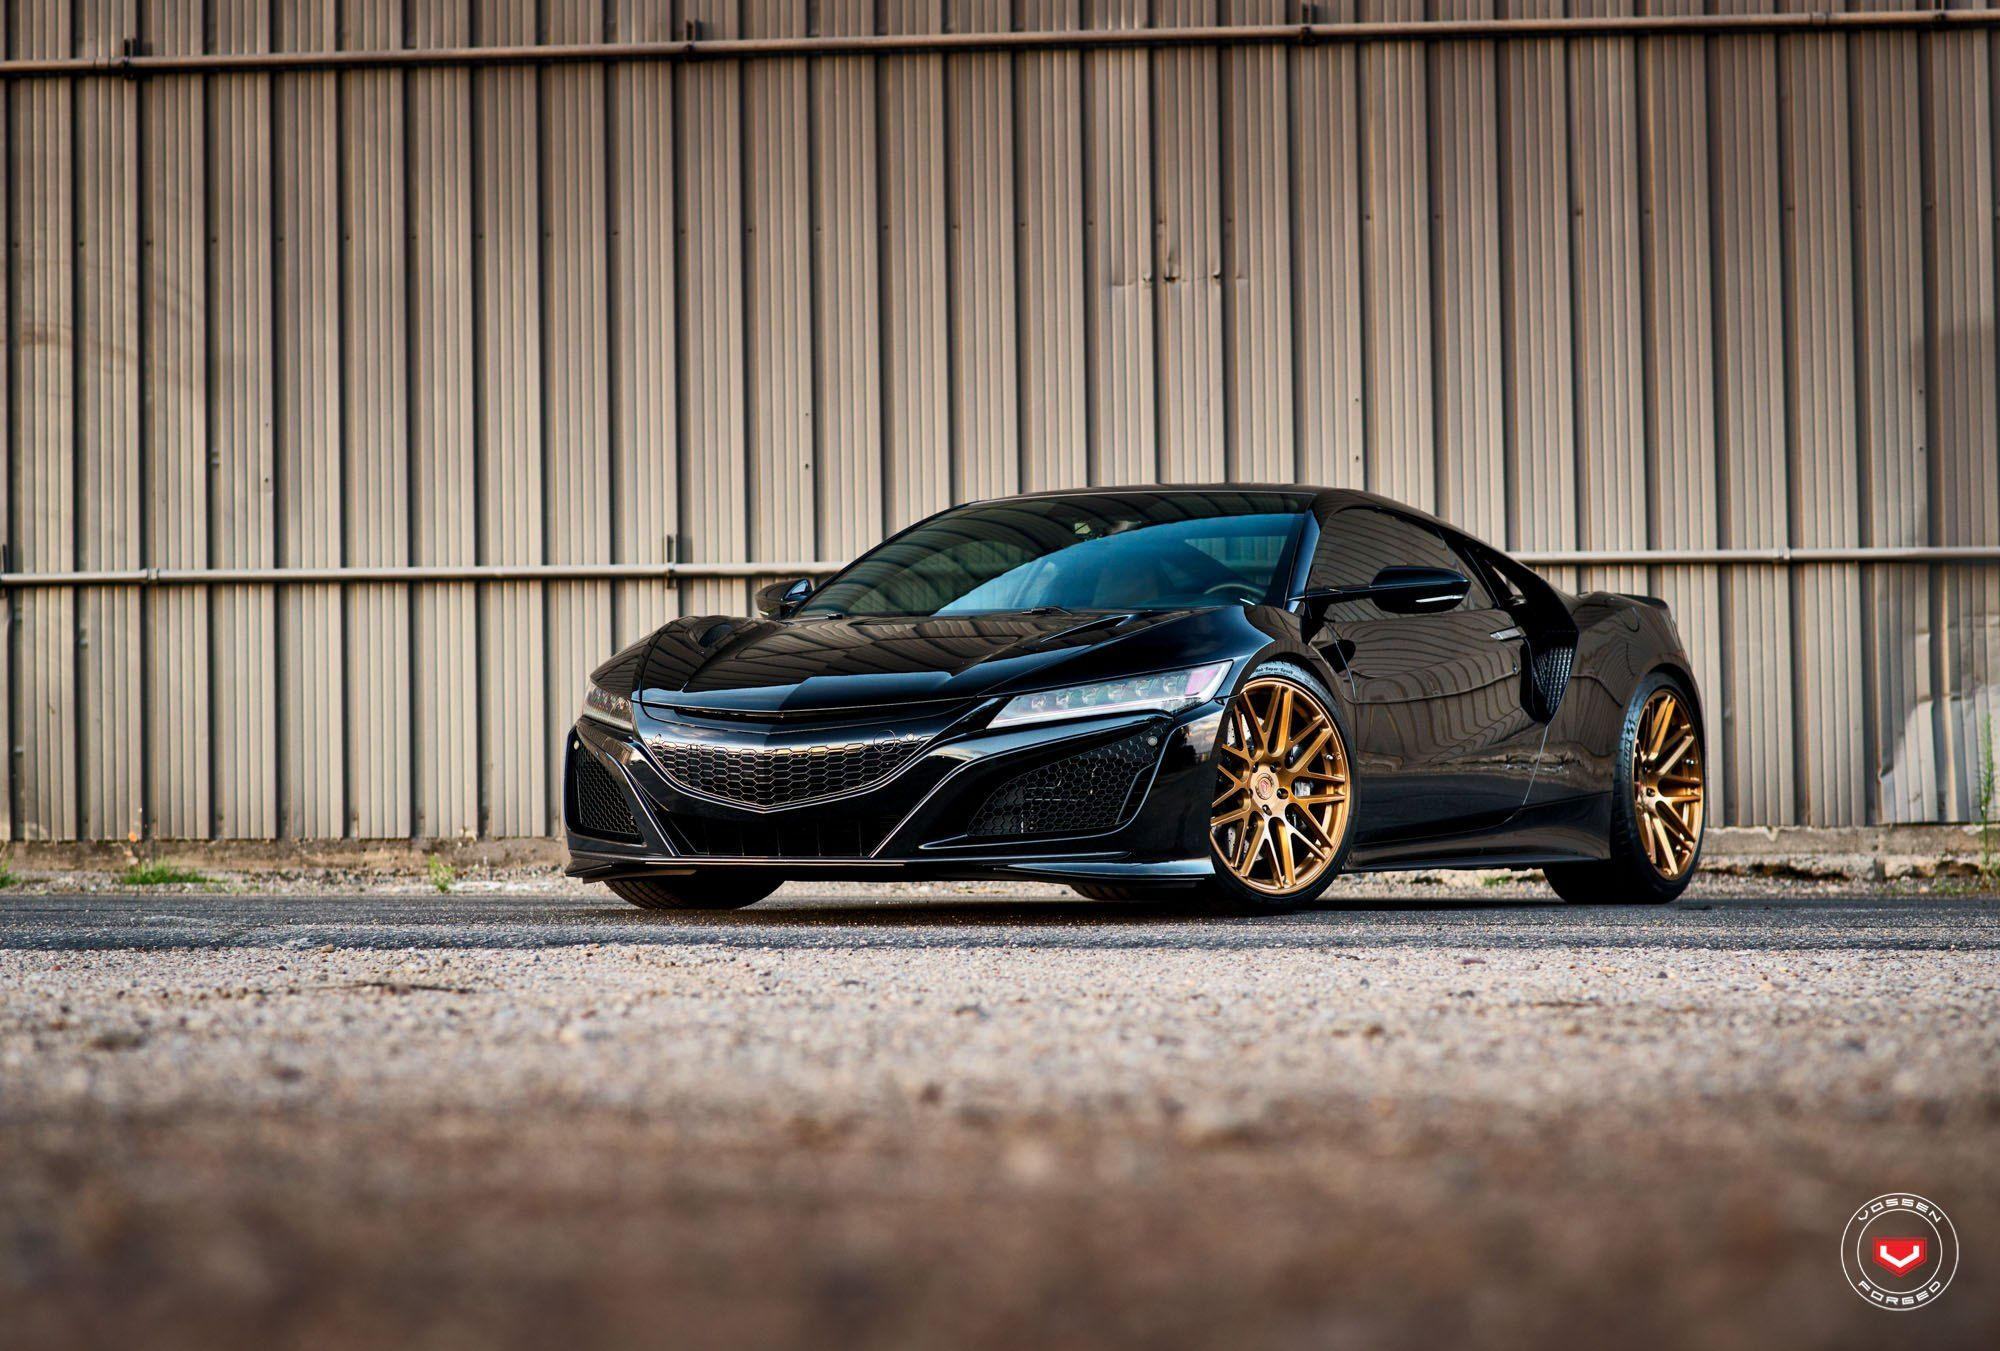 Modern Black Acura Nsx Speaks Of Luxury With Crystal Clear Led